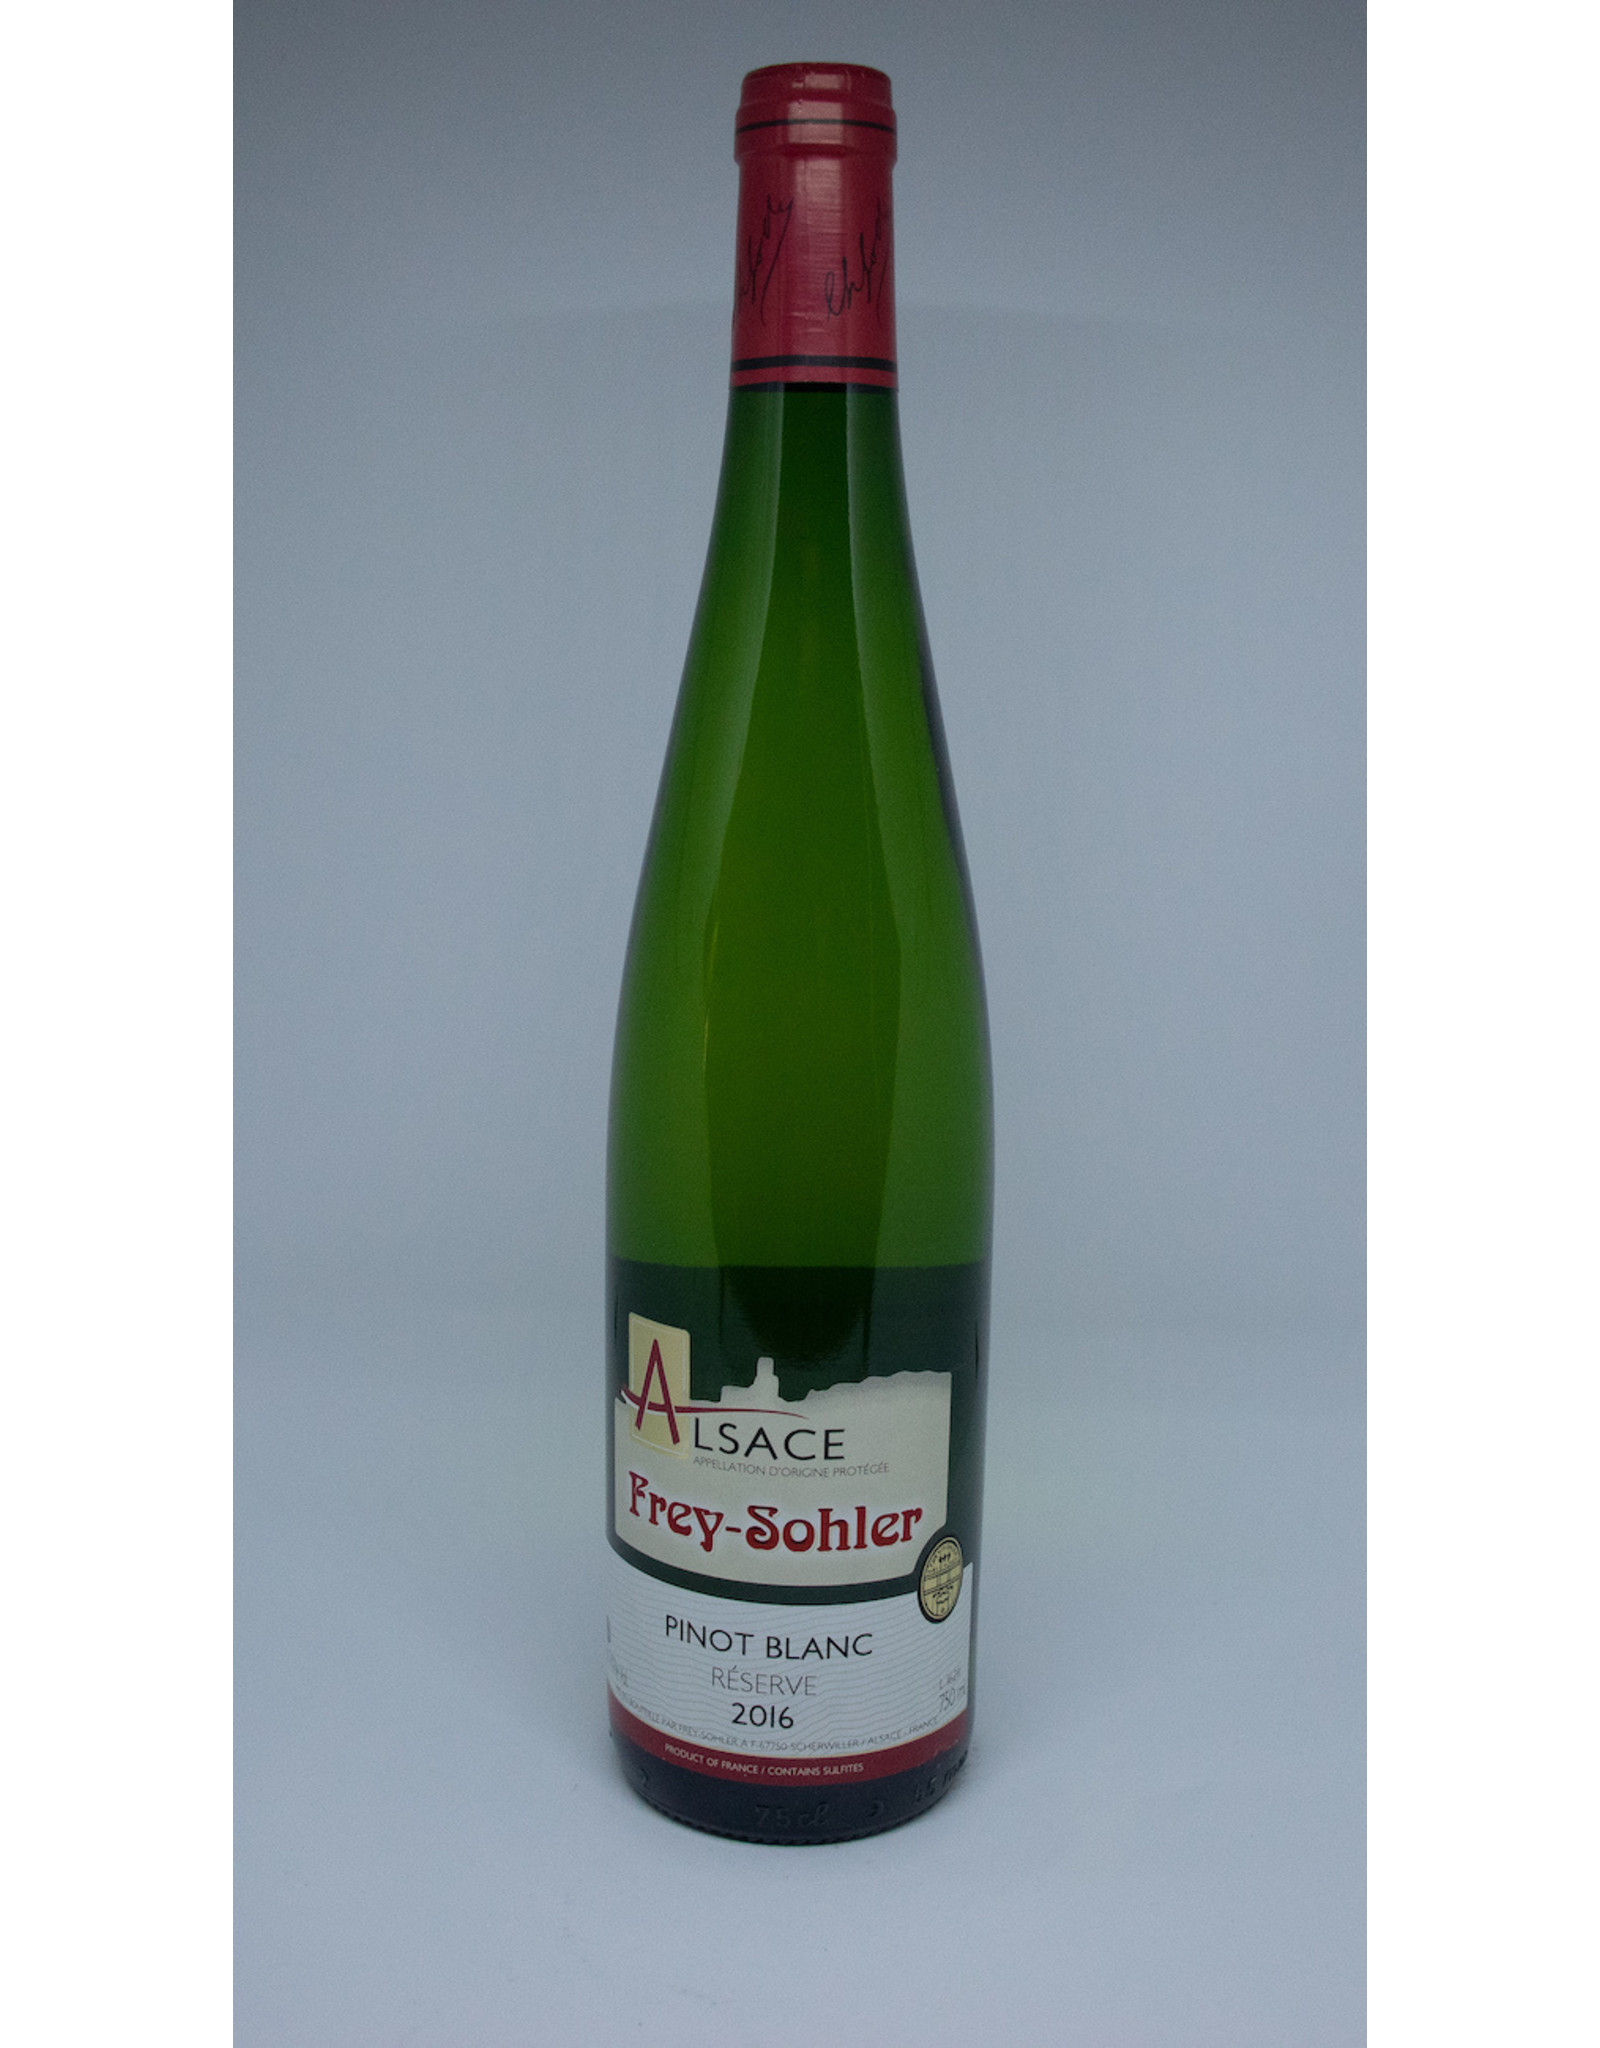 Frey-Solher Frey-Solher Pinot Blanc Reserve